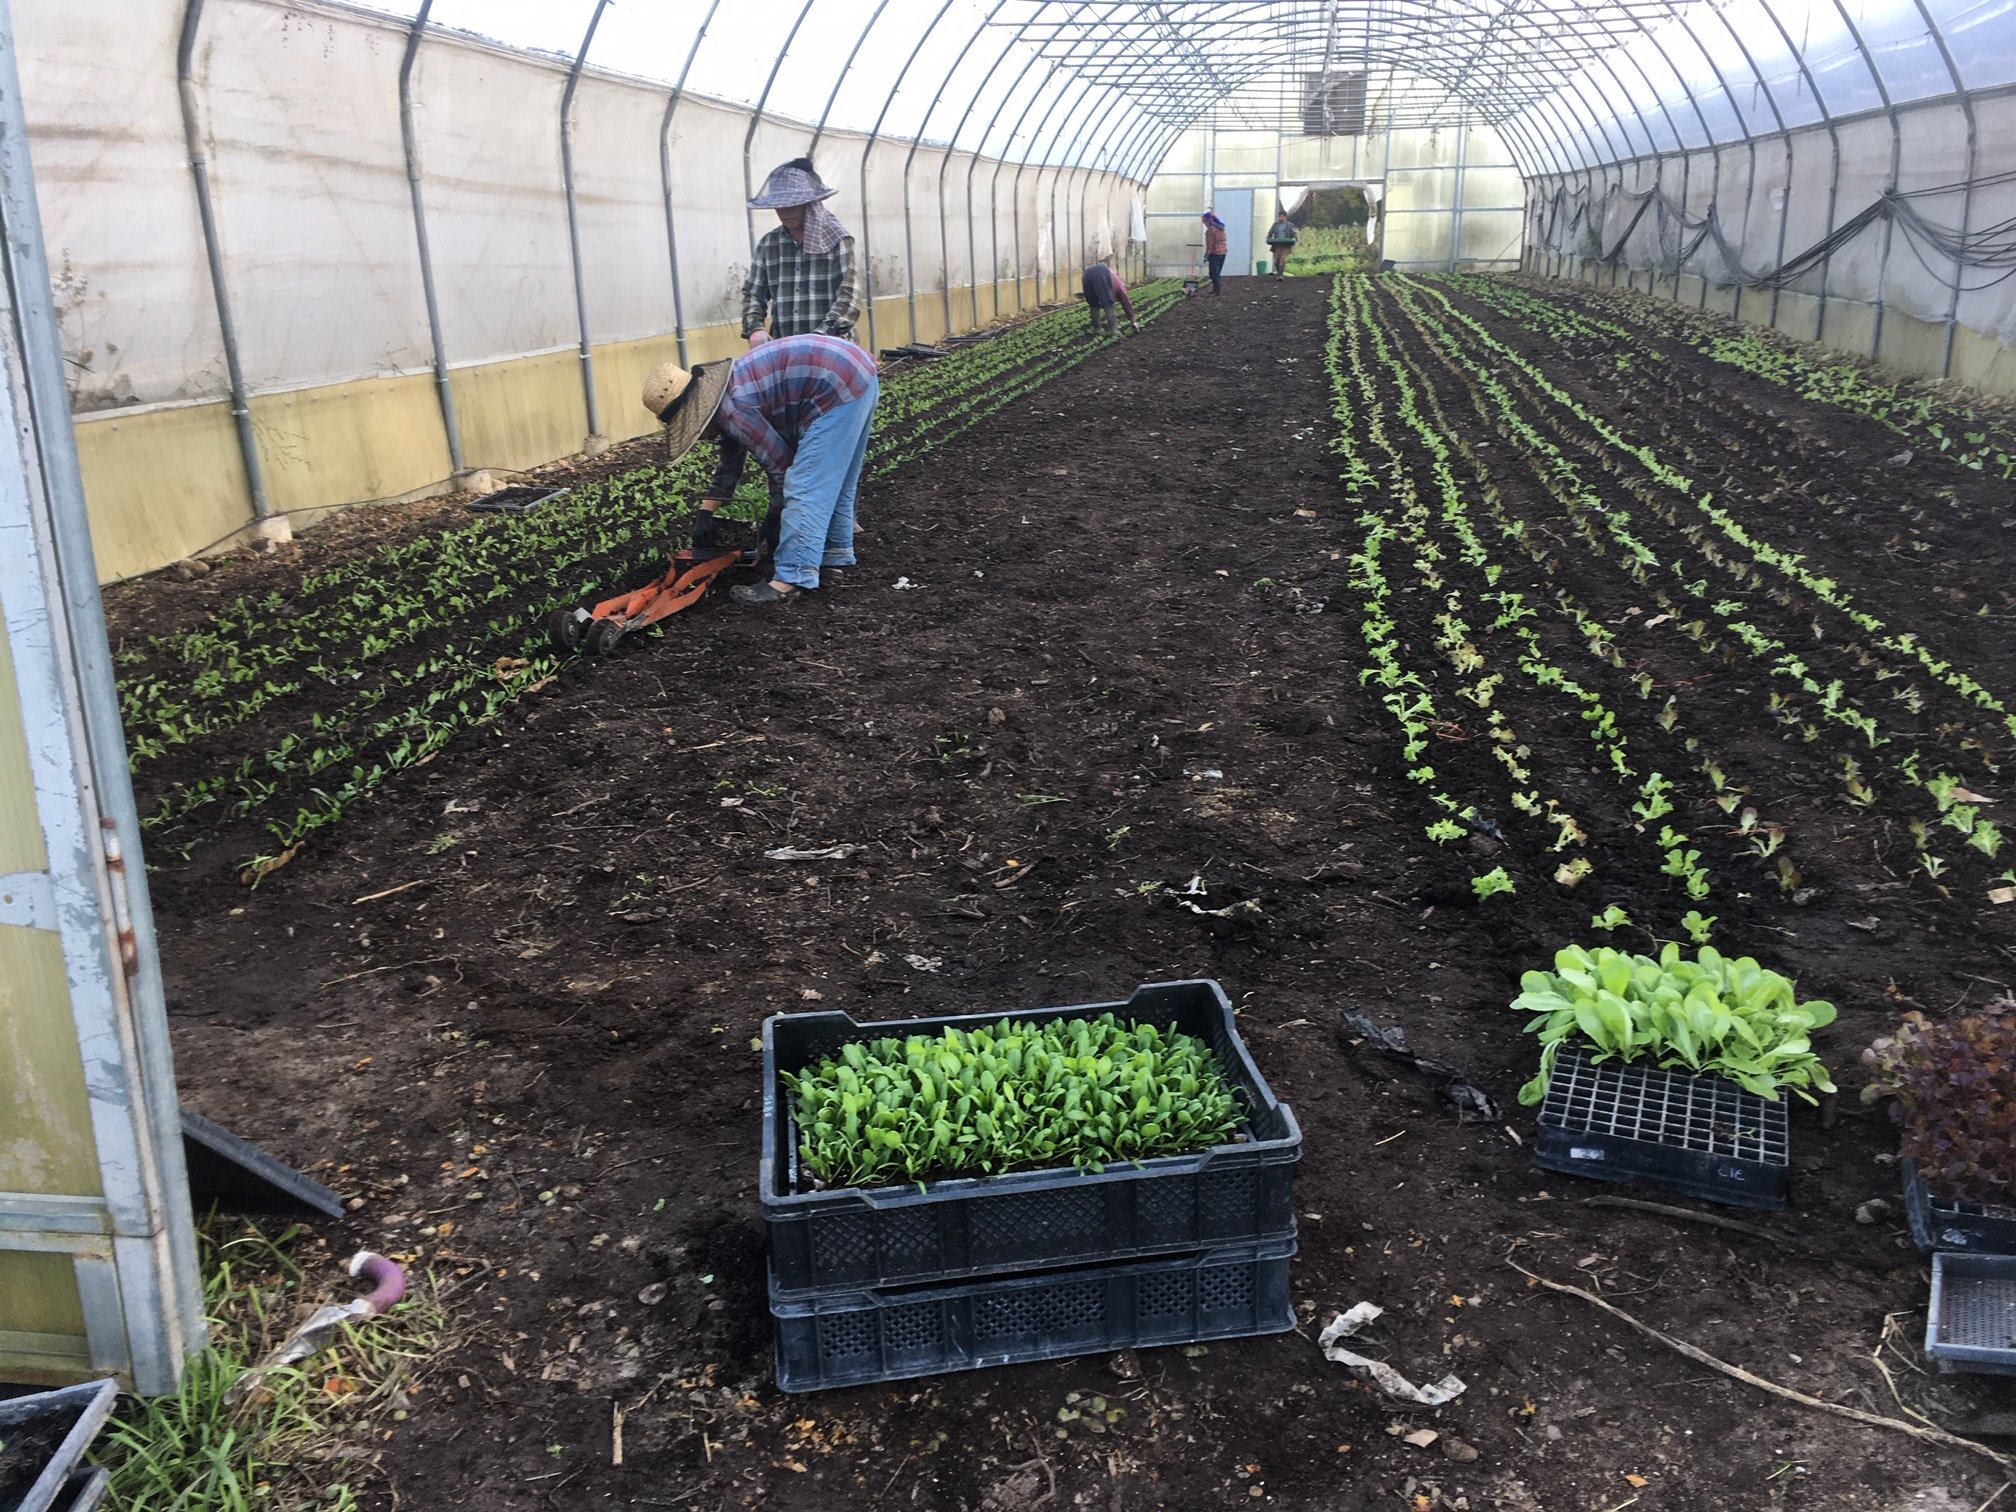 Farm happenings for October 18th